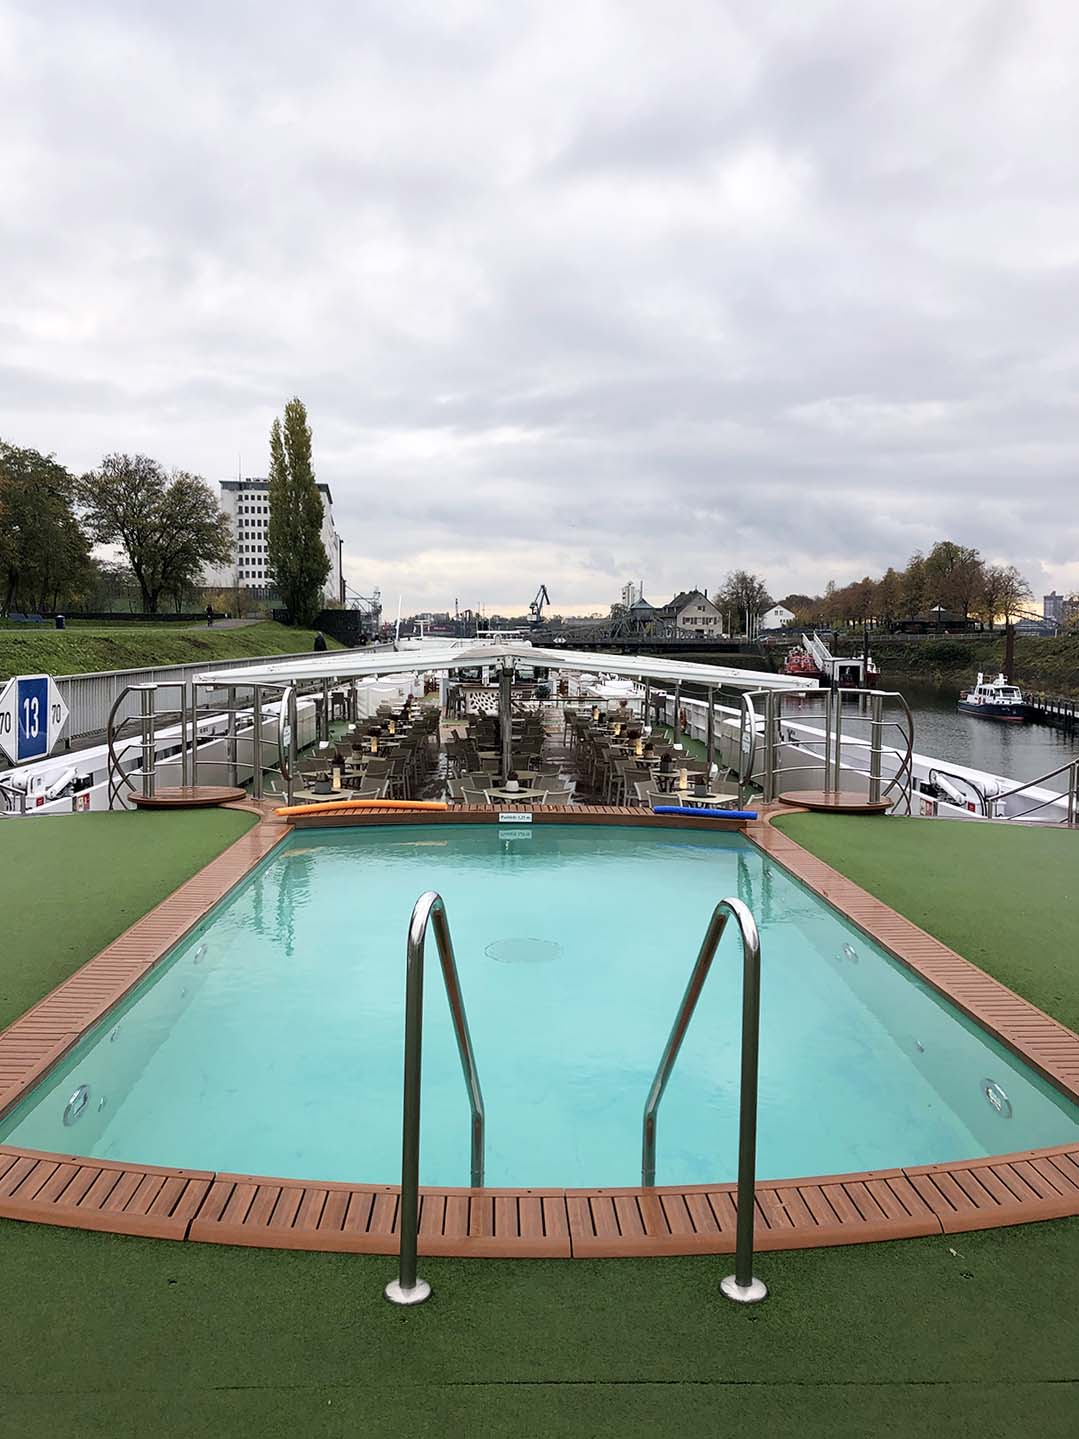 A-Rosa Flora swimming pool on river cruise